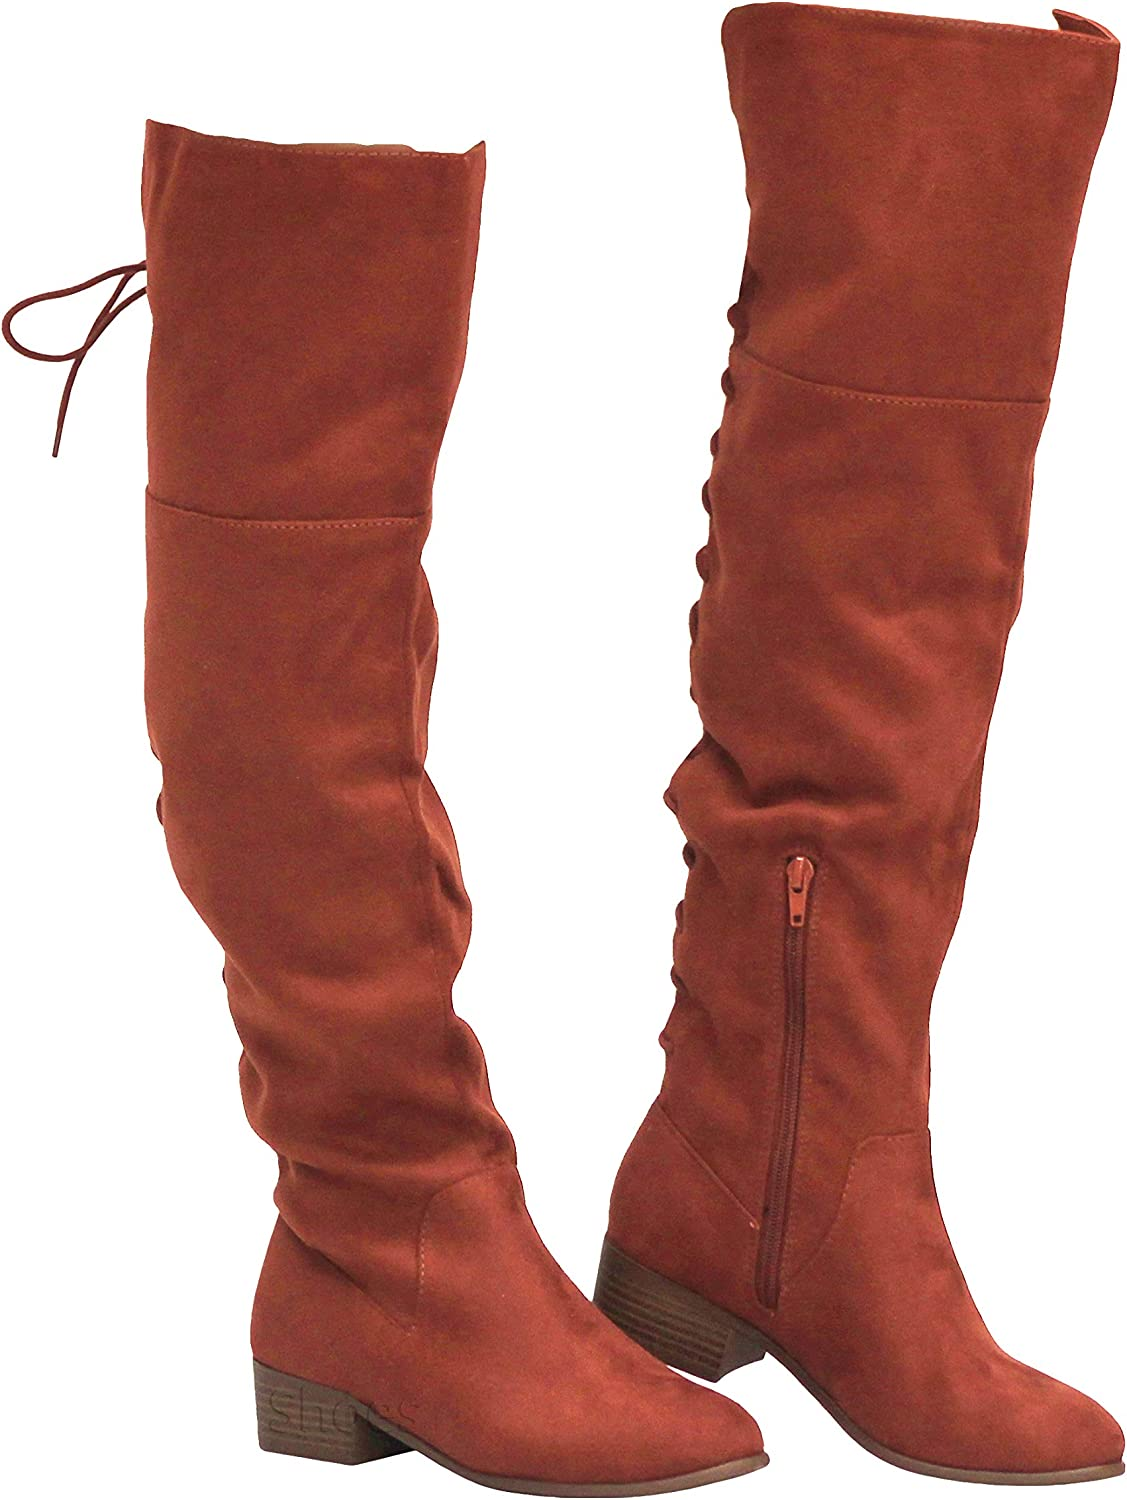 MVE Shoes Women's Over The Knee Back Lice Up Flat Boots